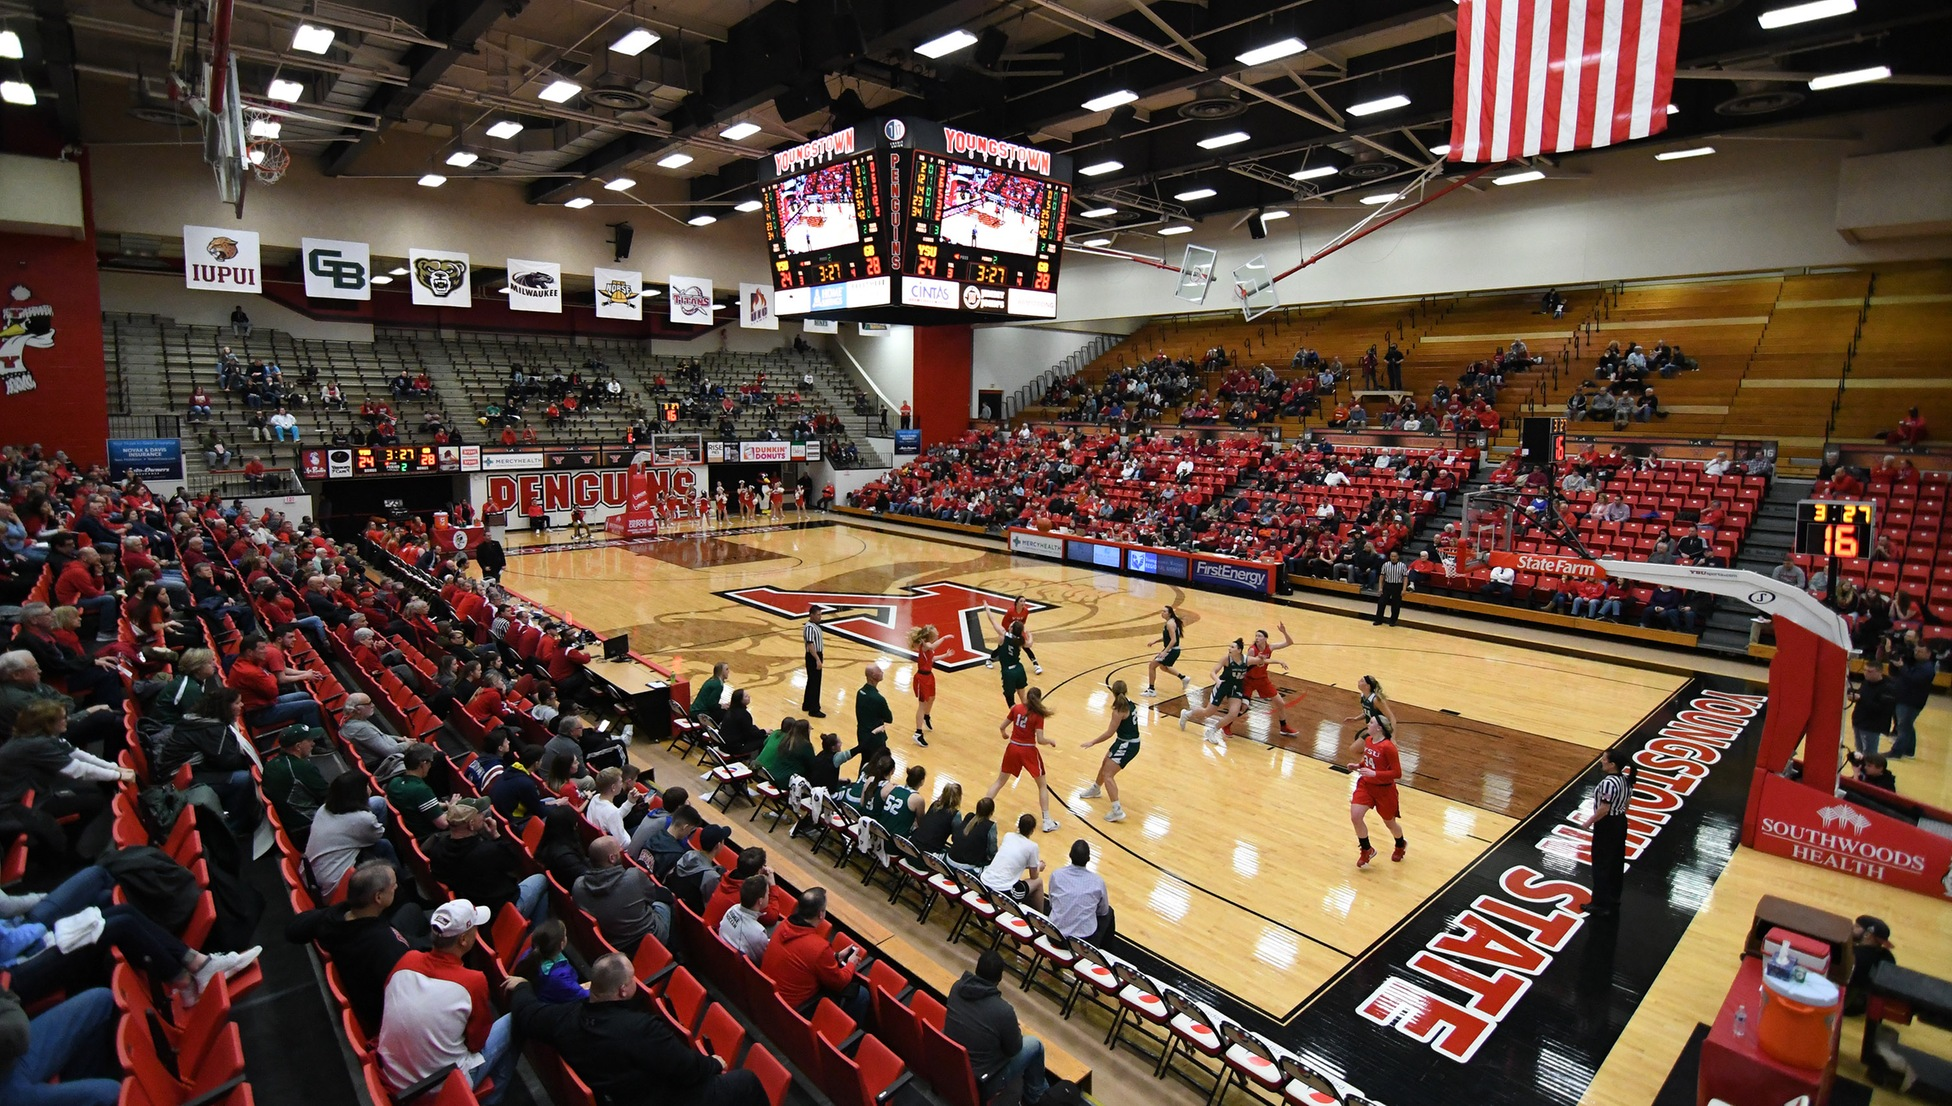 YSU Women's Basketball at Beeghly Center